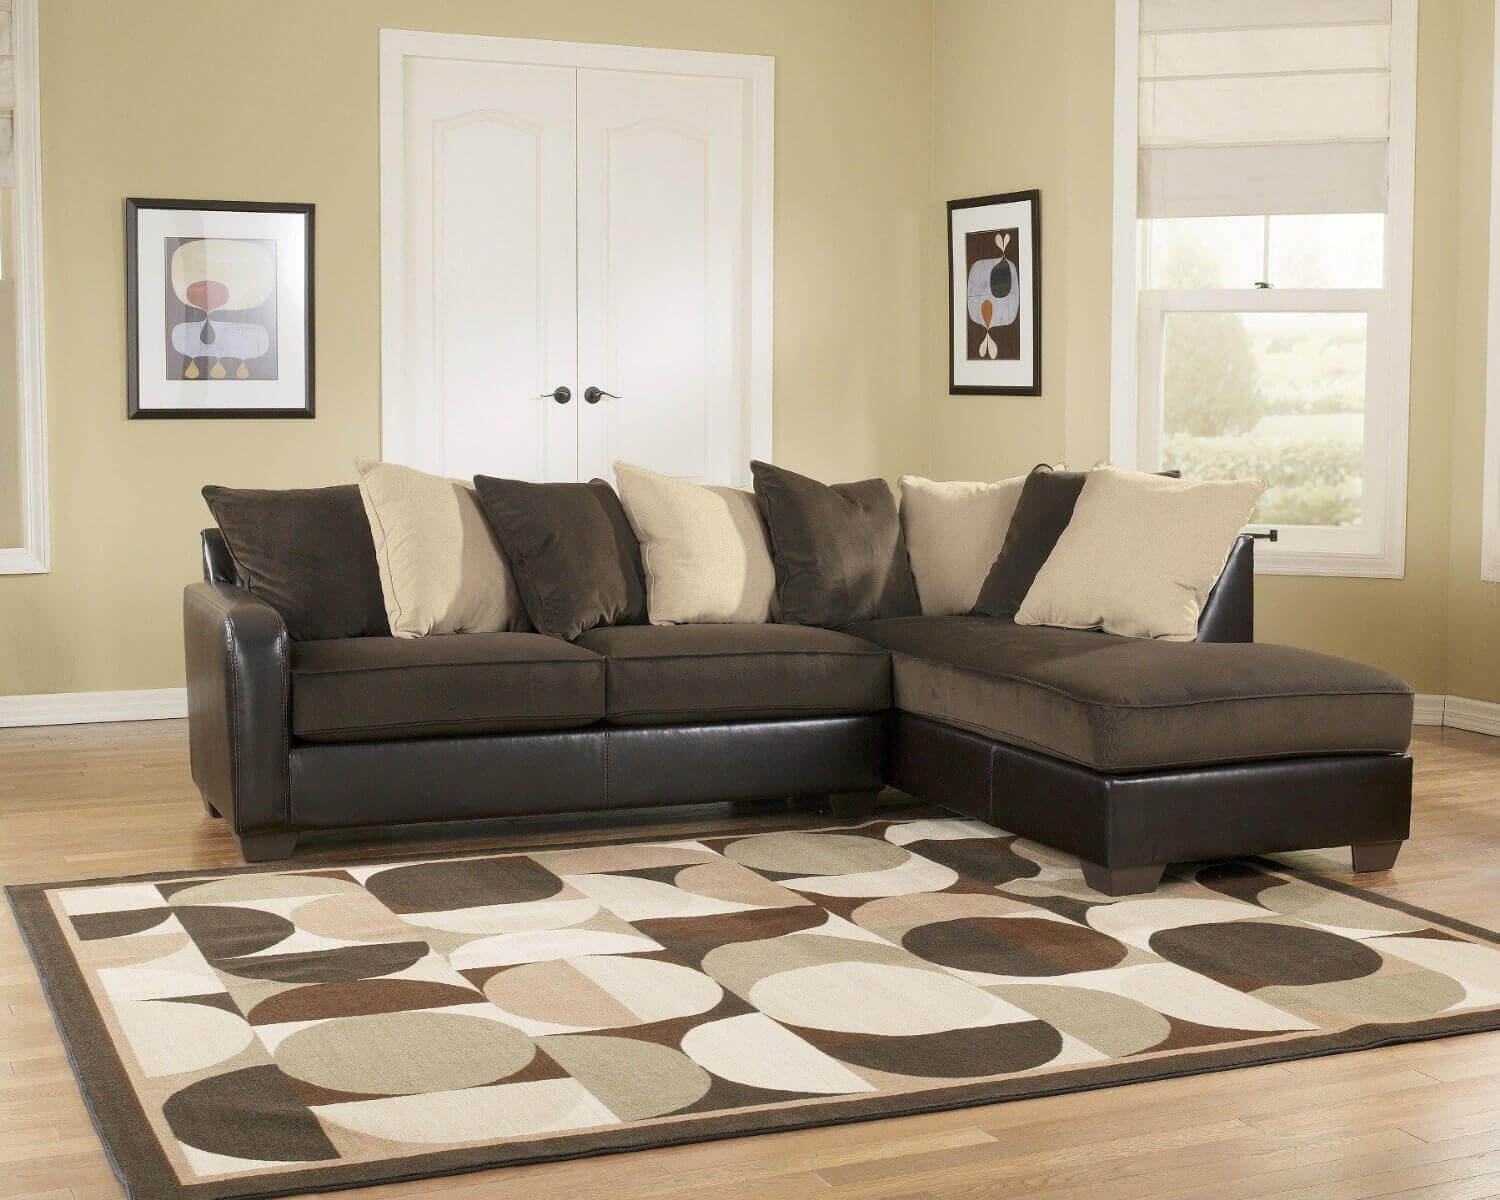 This piece from Ashley Furniture is a contemporary design that utilizes two popular design colors: beige and espresso.